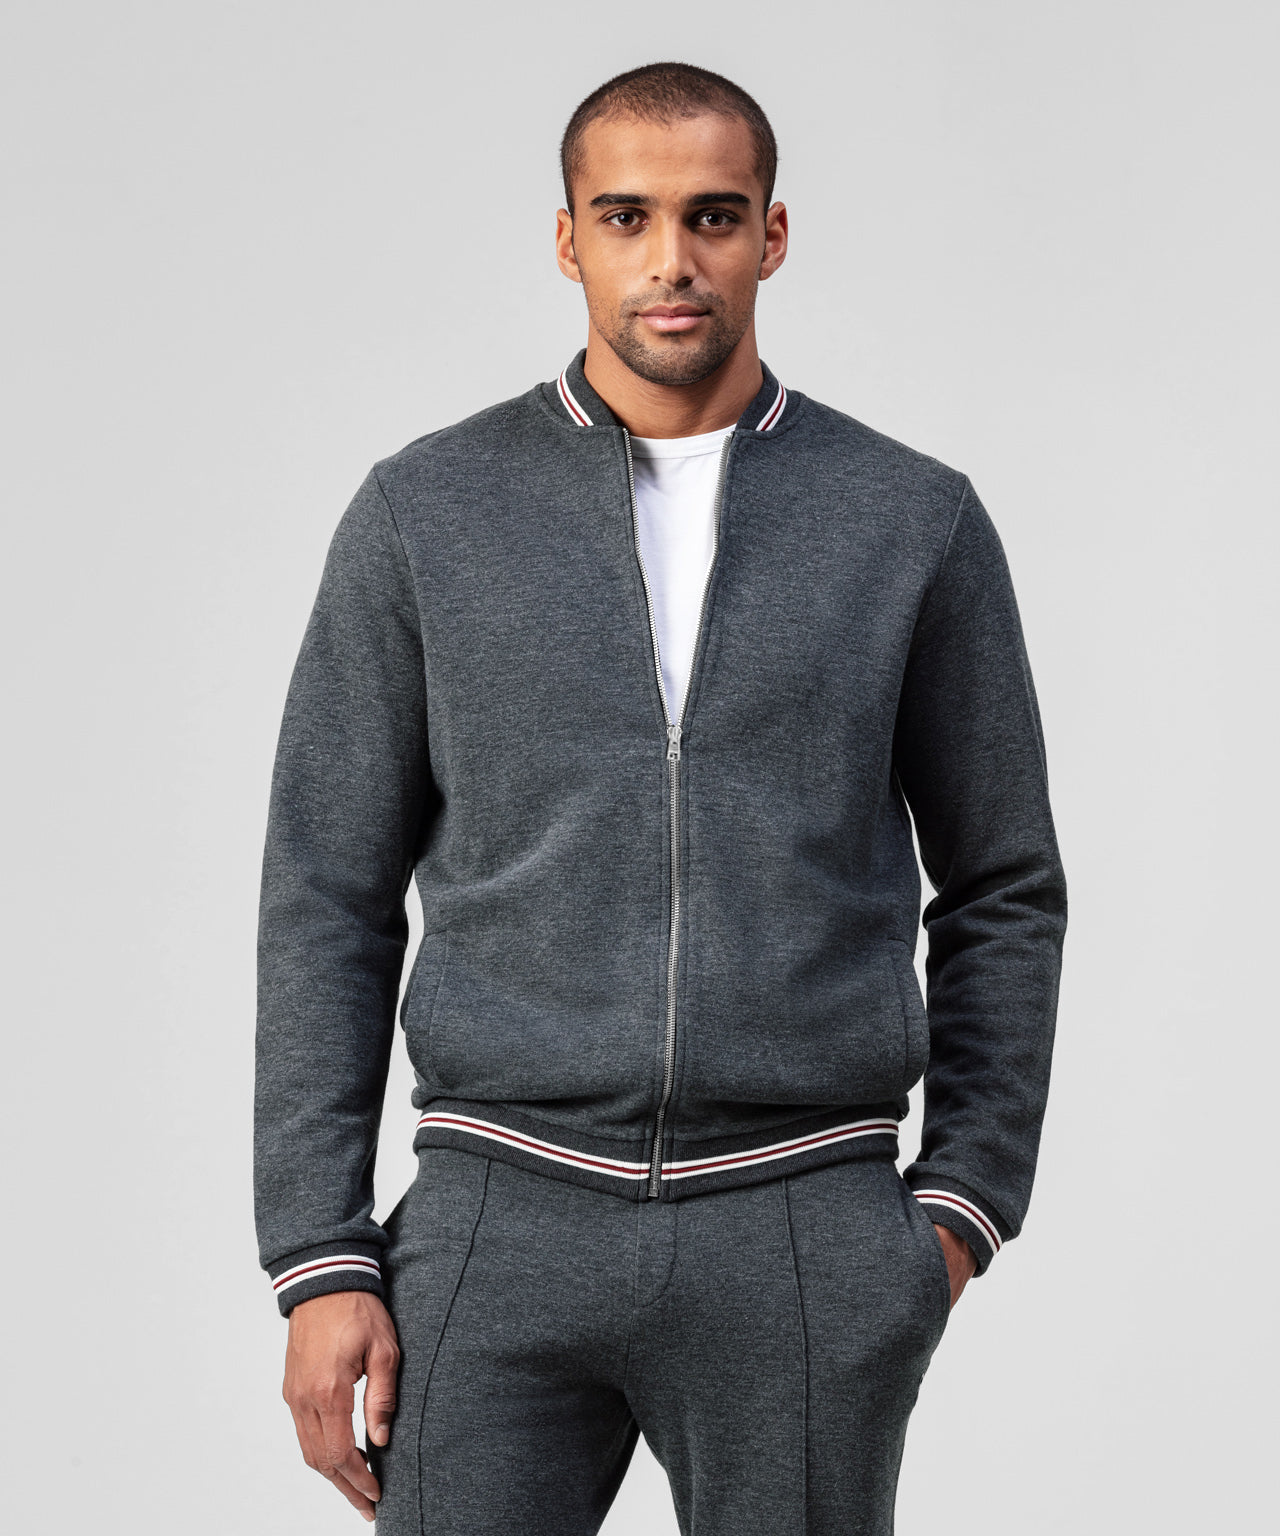 Urban Teddy Jacket - grey anthracite